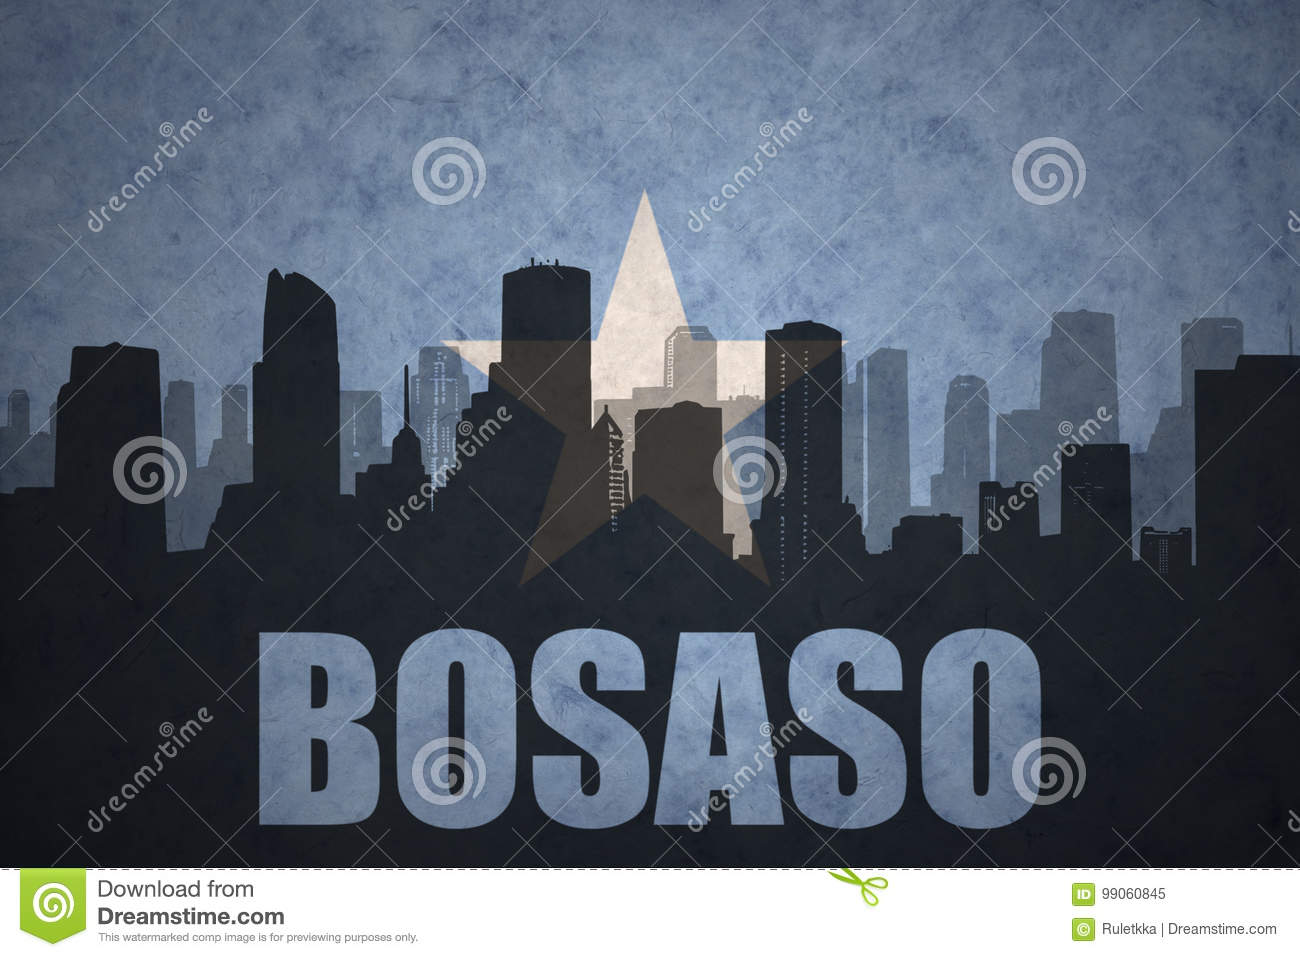 Abstract Silhouette Of The City With Text Bosaso At The